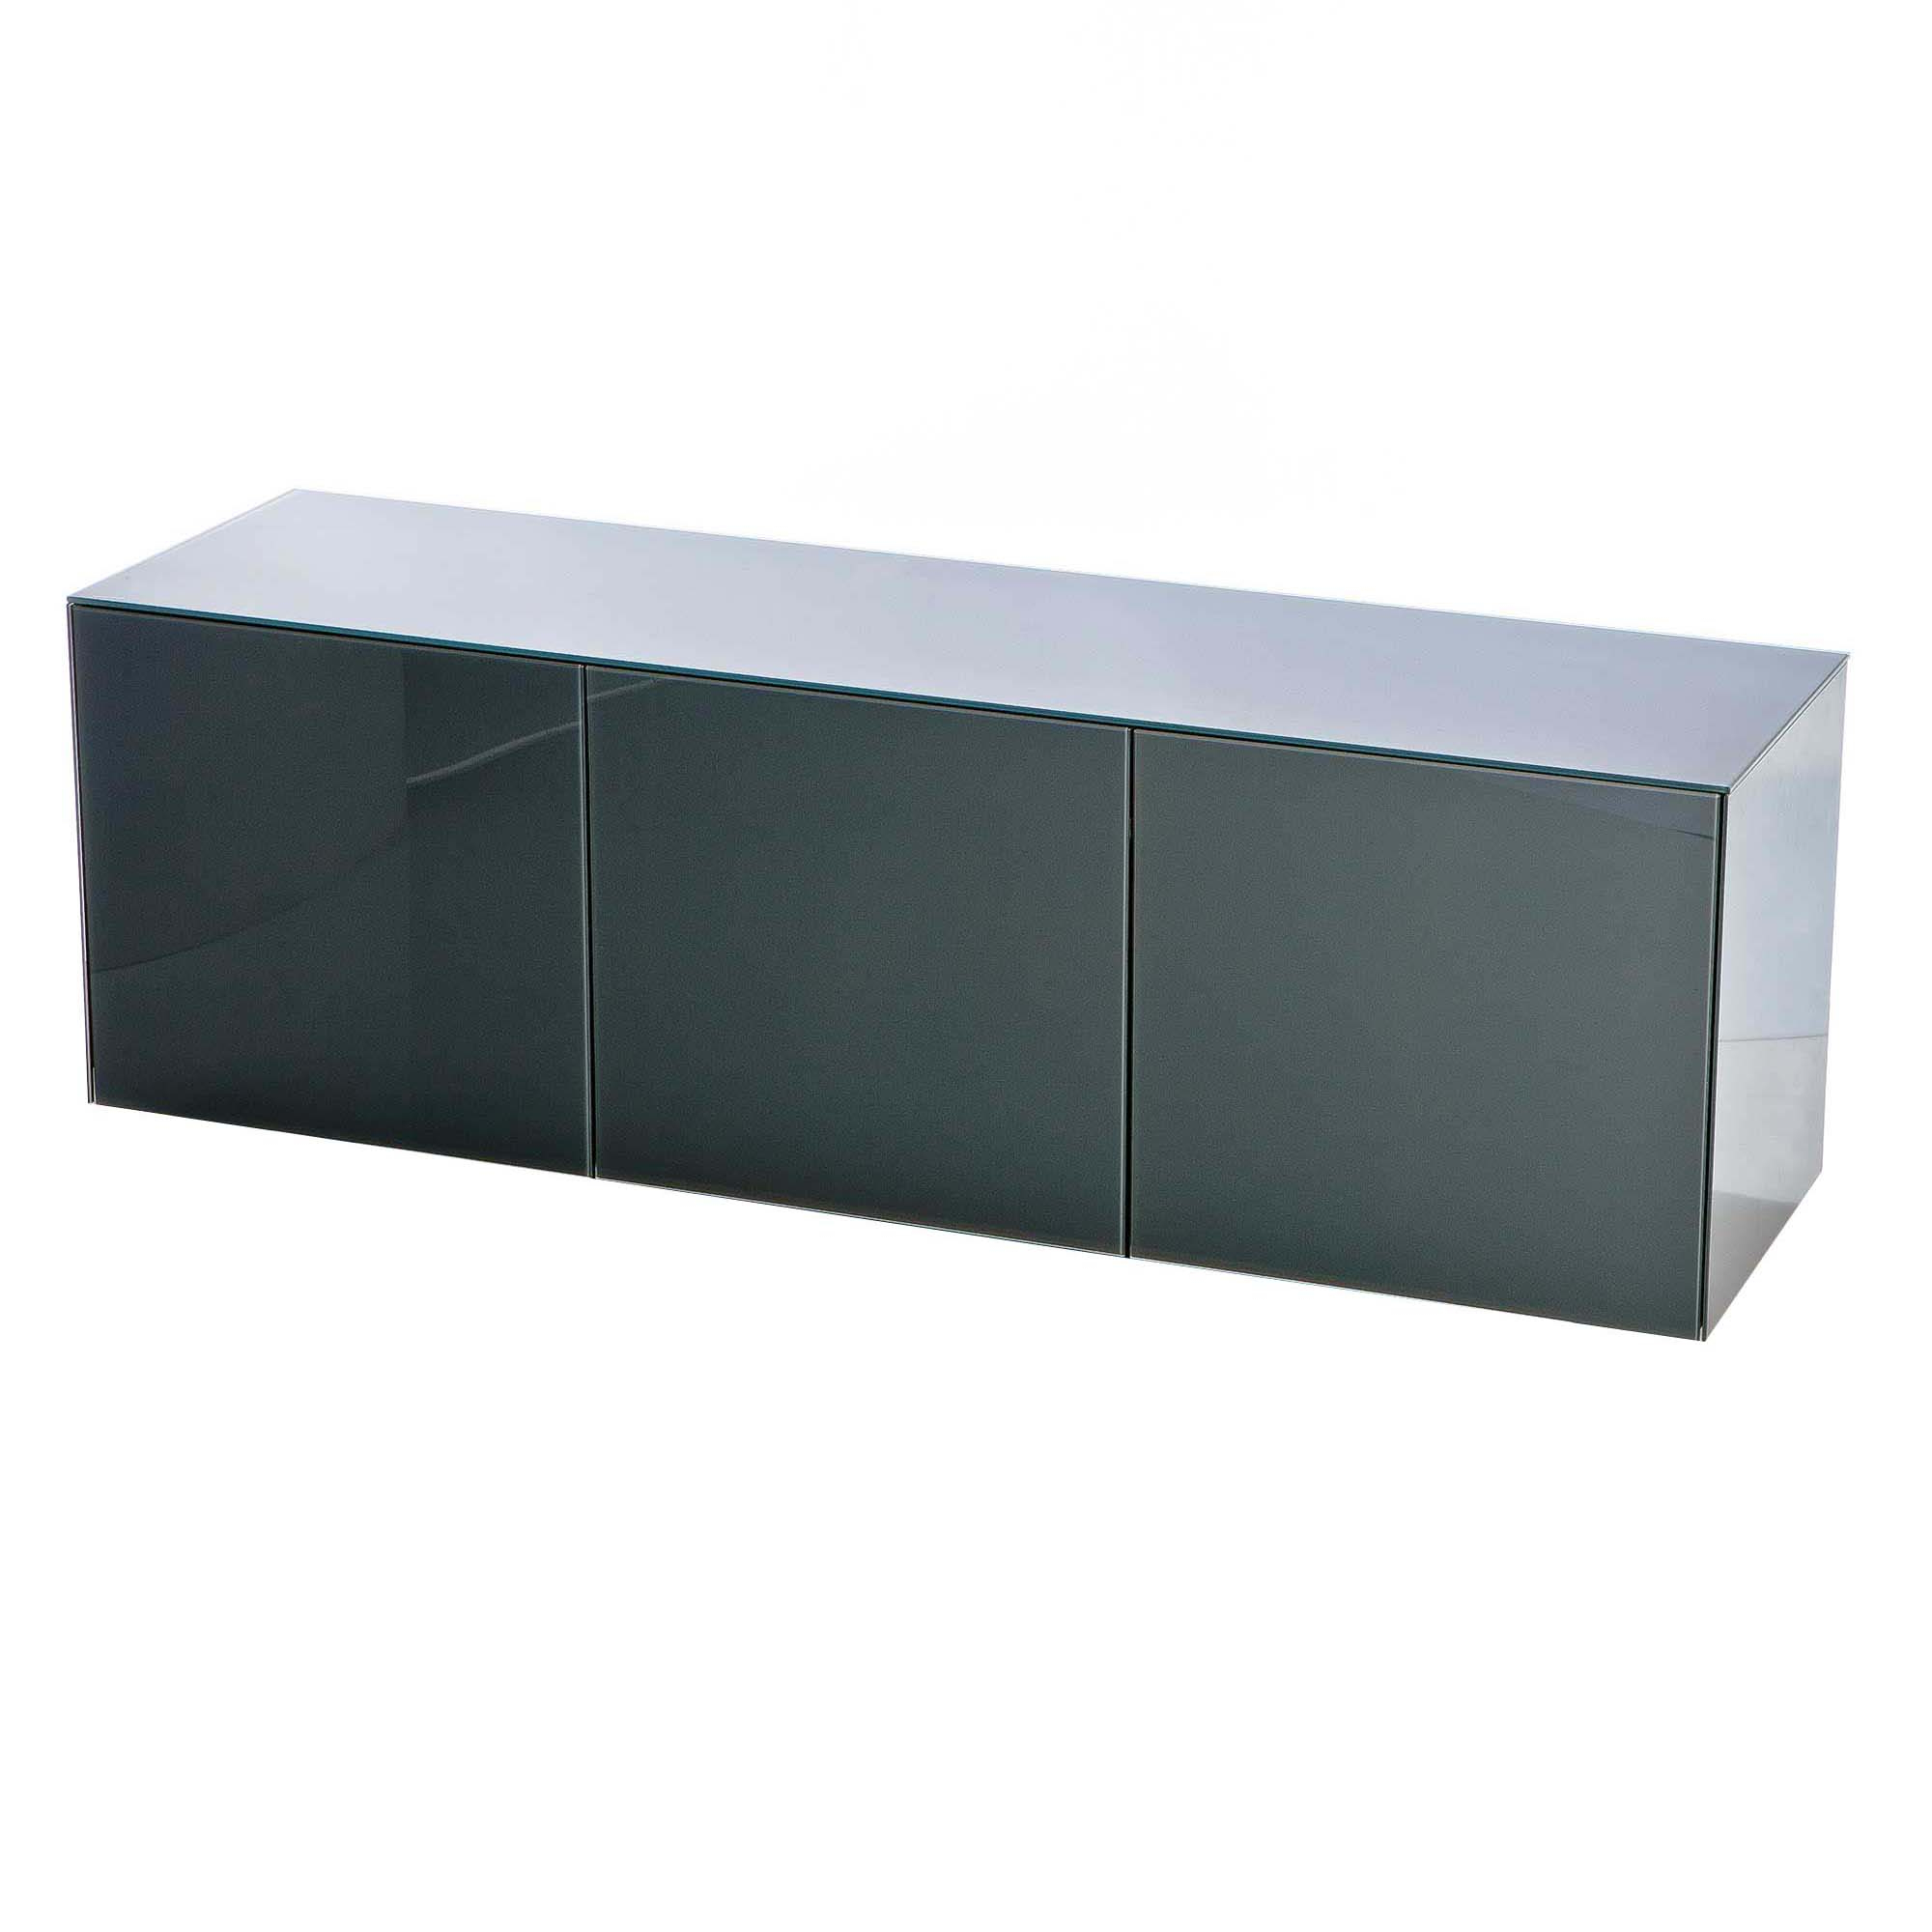 Glass Tv Cabinets With Doors Within Well Known Intelligent Concept 150Cm High Gloss 3 Door Tv Unit, Choice Of (View 7 of 20)